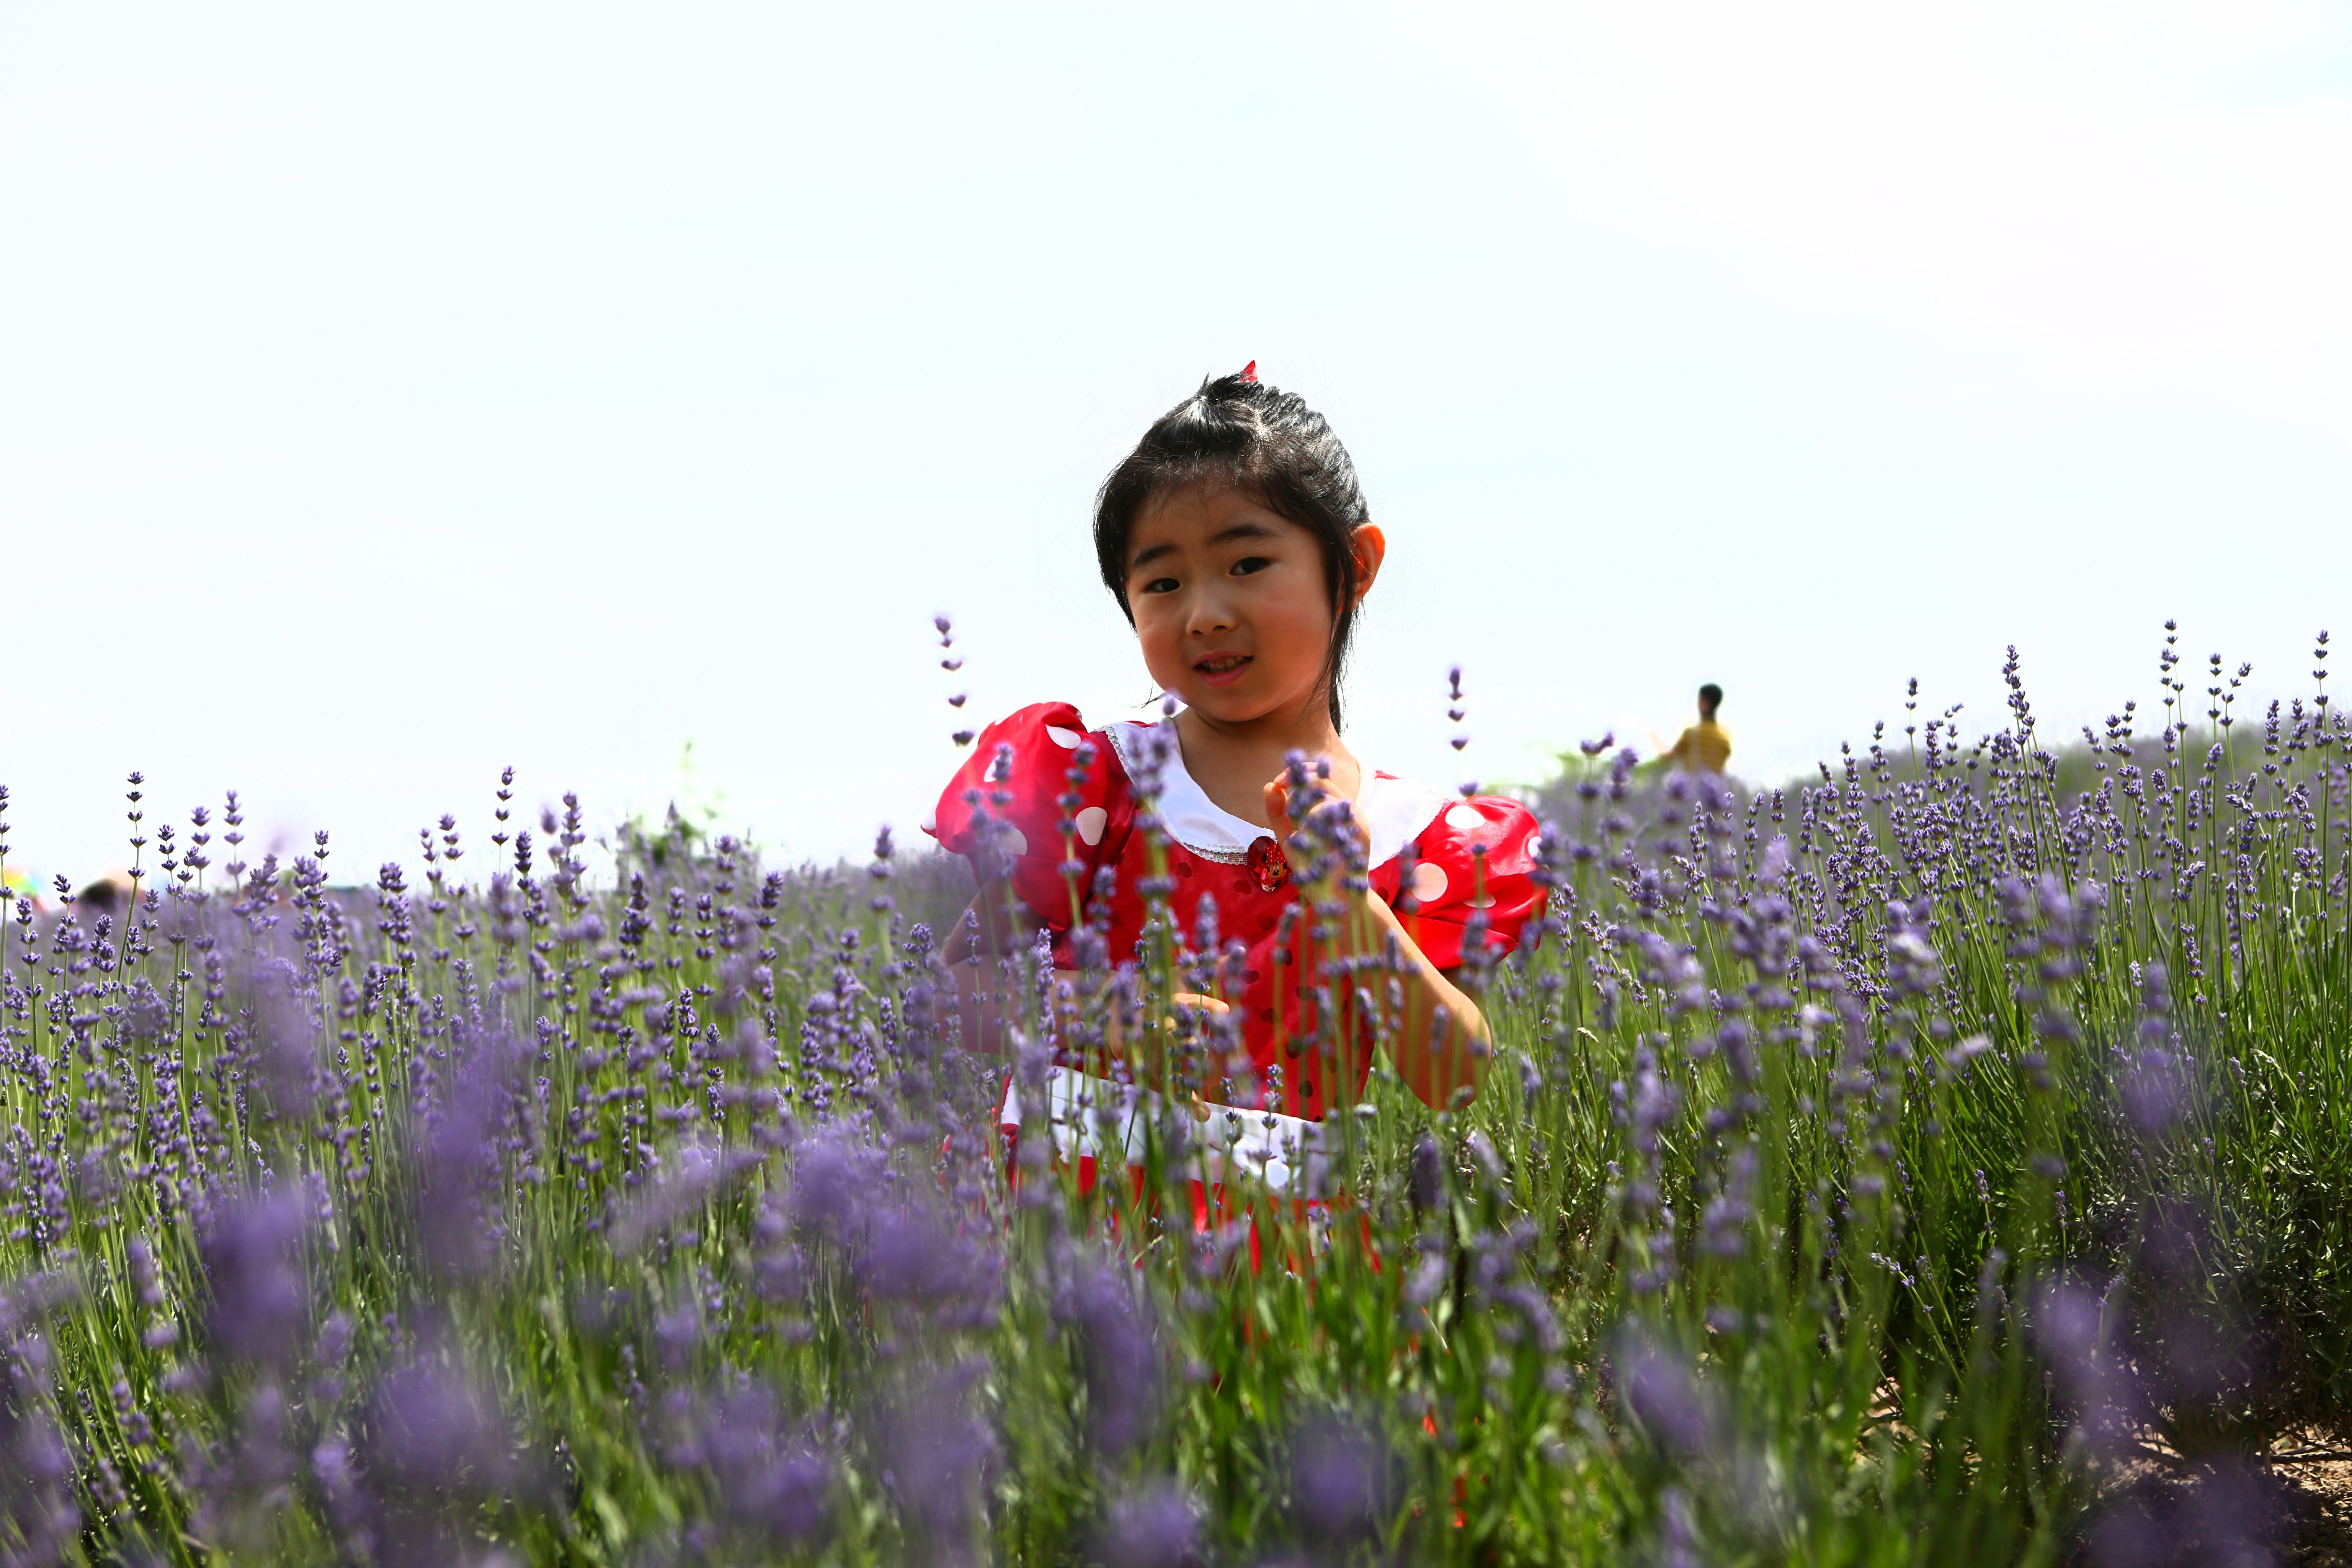 A girl poses for photo at the Momchilovtsi Herb Garden in Shanghai International Tourism and Resorts in Pudong New Area today, the 7th National Tourism Day. The garden which opened today and offered free admission to mark the National Tourism Day has to slow the inflow of tourists as they swarmed the place. A total of 75 scenic spots and museums in the city offer half-priced admission today. -- Jiang Xiaowei